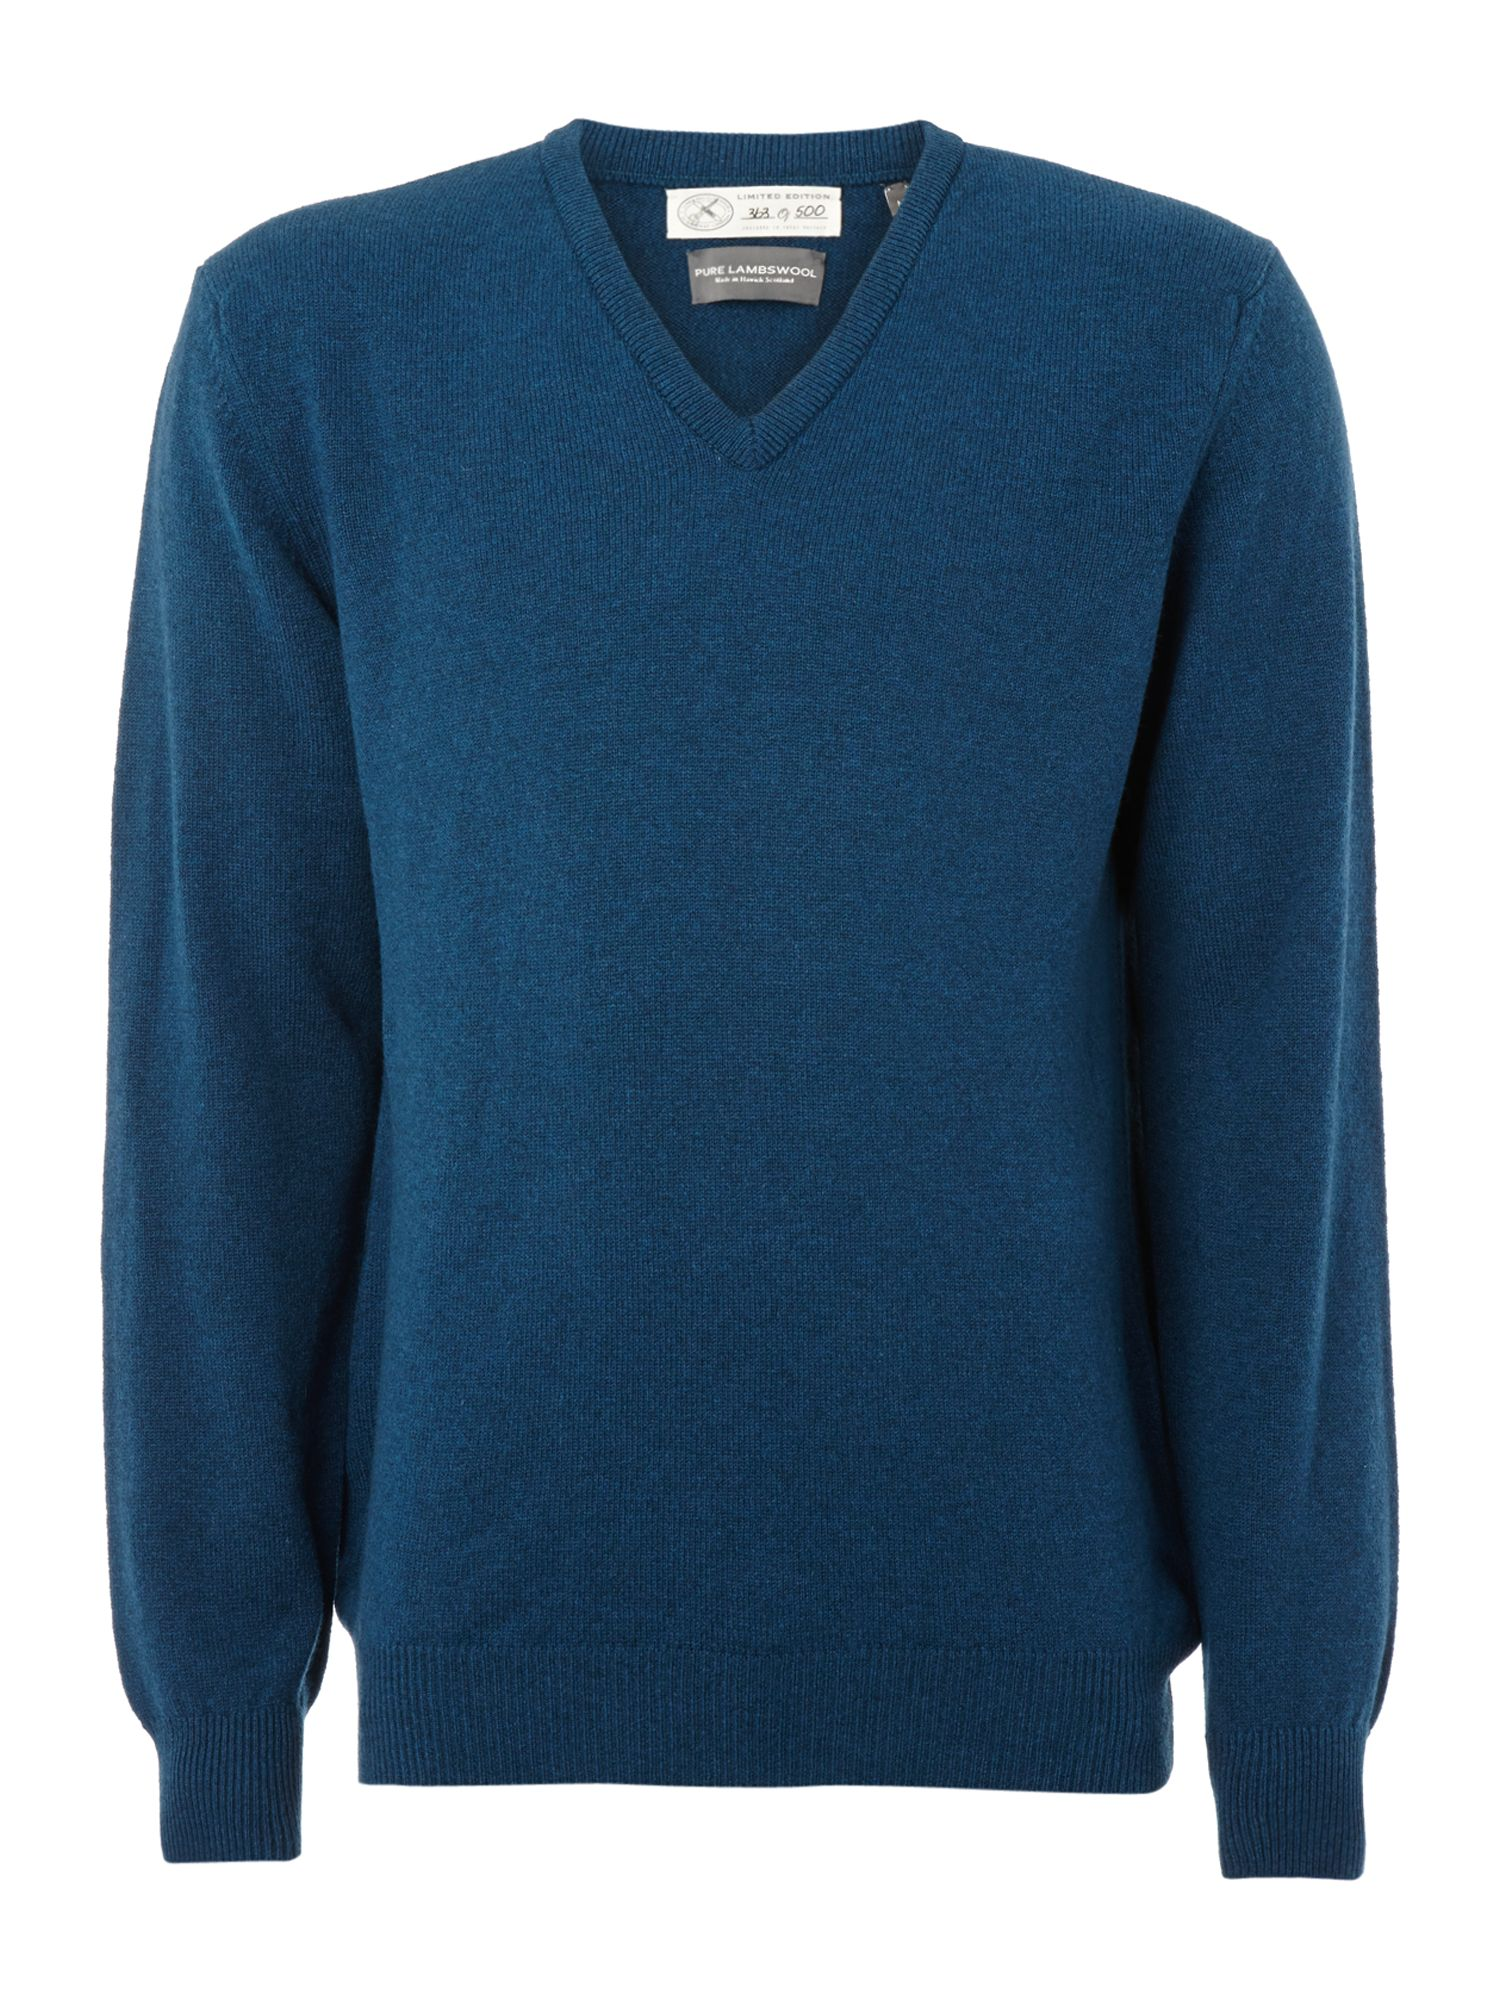 Hawick made in scotland lambswool v-neck